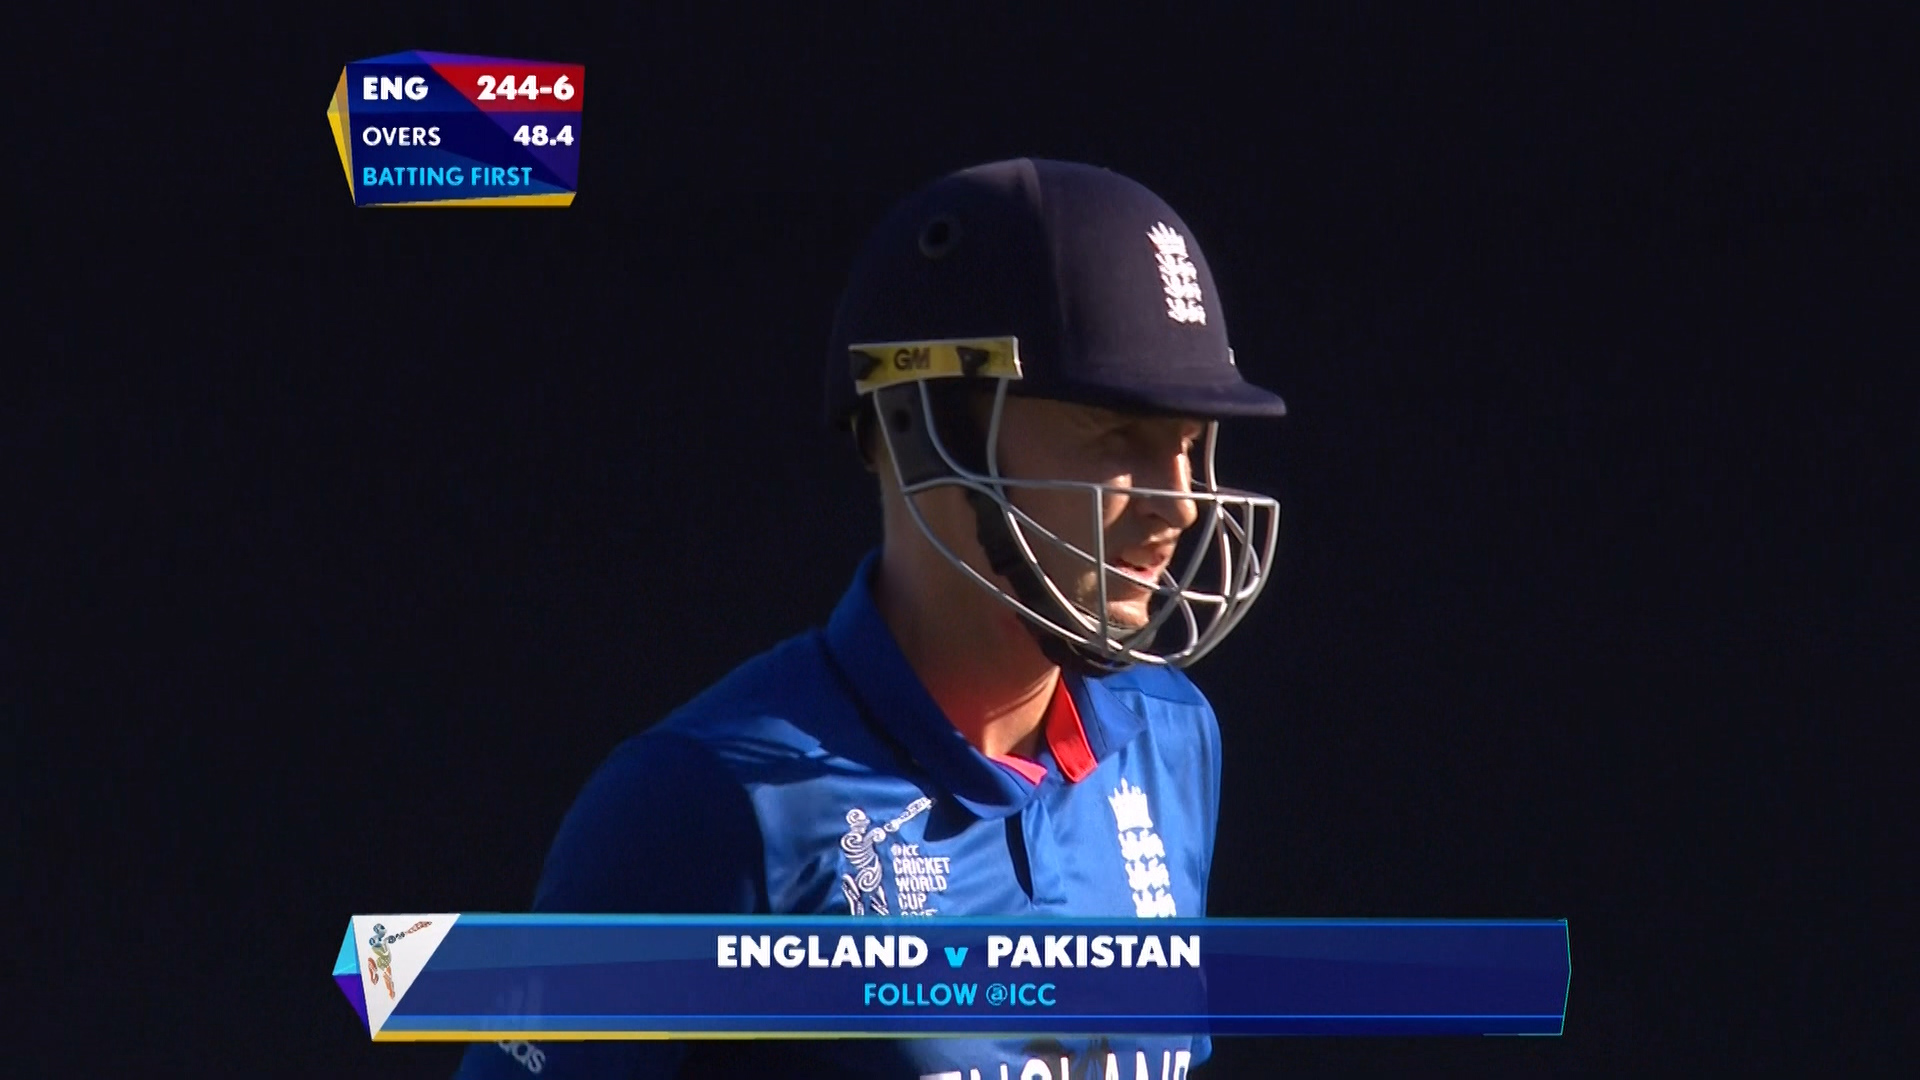 ENG vs PAK – root wicket